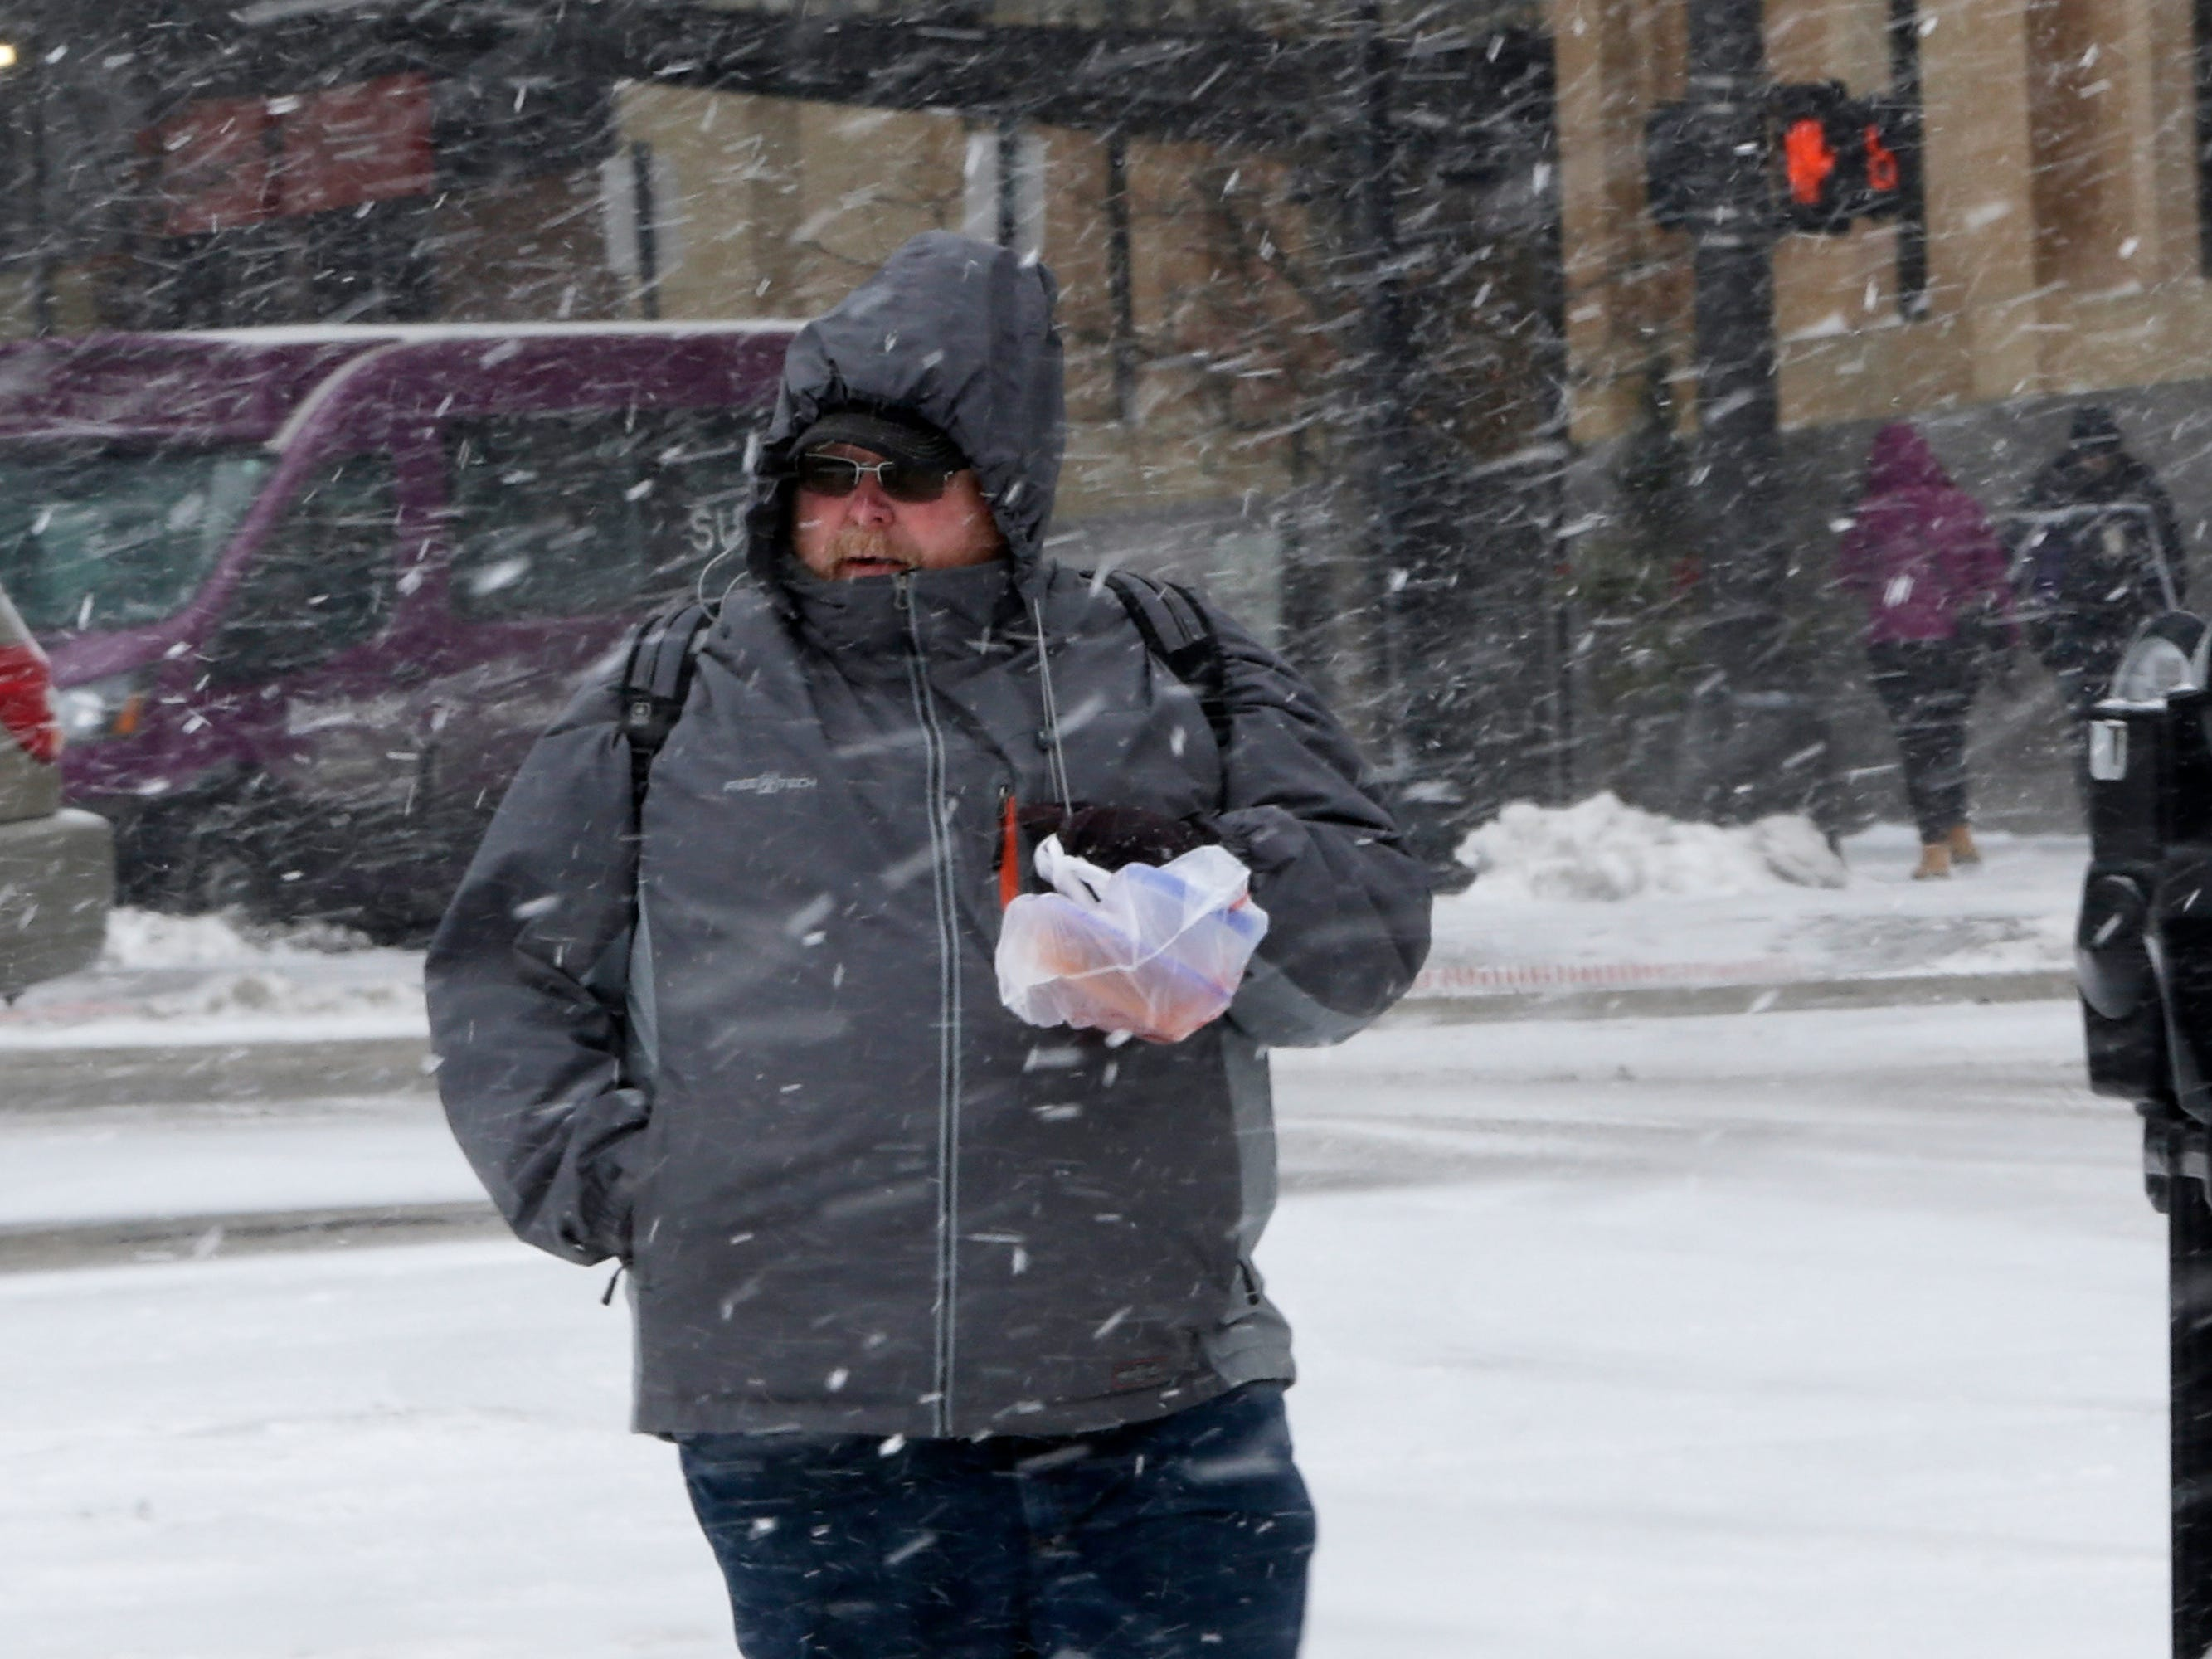 A person walks in the blowing snow in Omaha, Neb. Snow and freezing rain has prompted officials to close the largest school districts in Nebraska and Iowa ahead of a winter storm that's threatening the Midwest with several inches of snow.